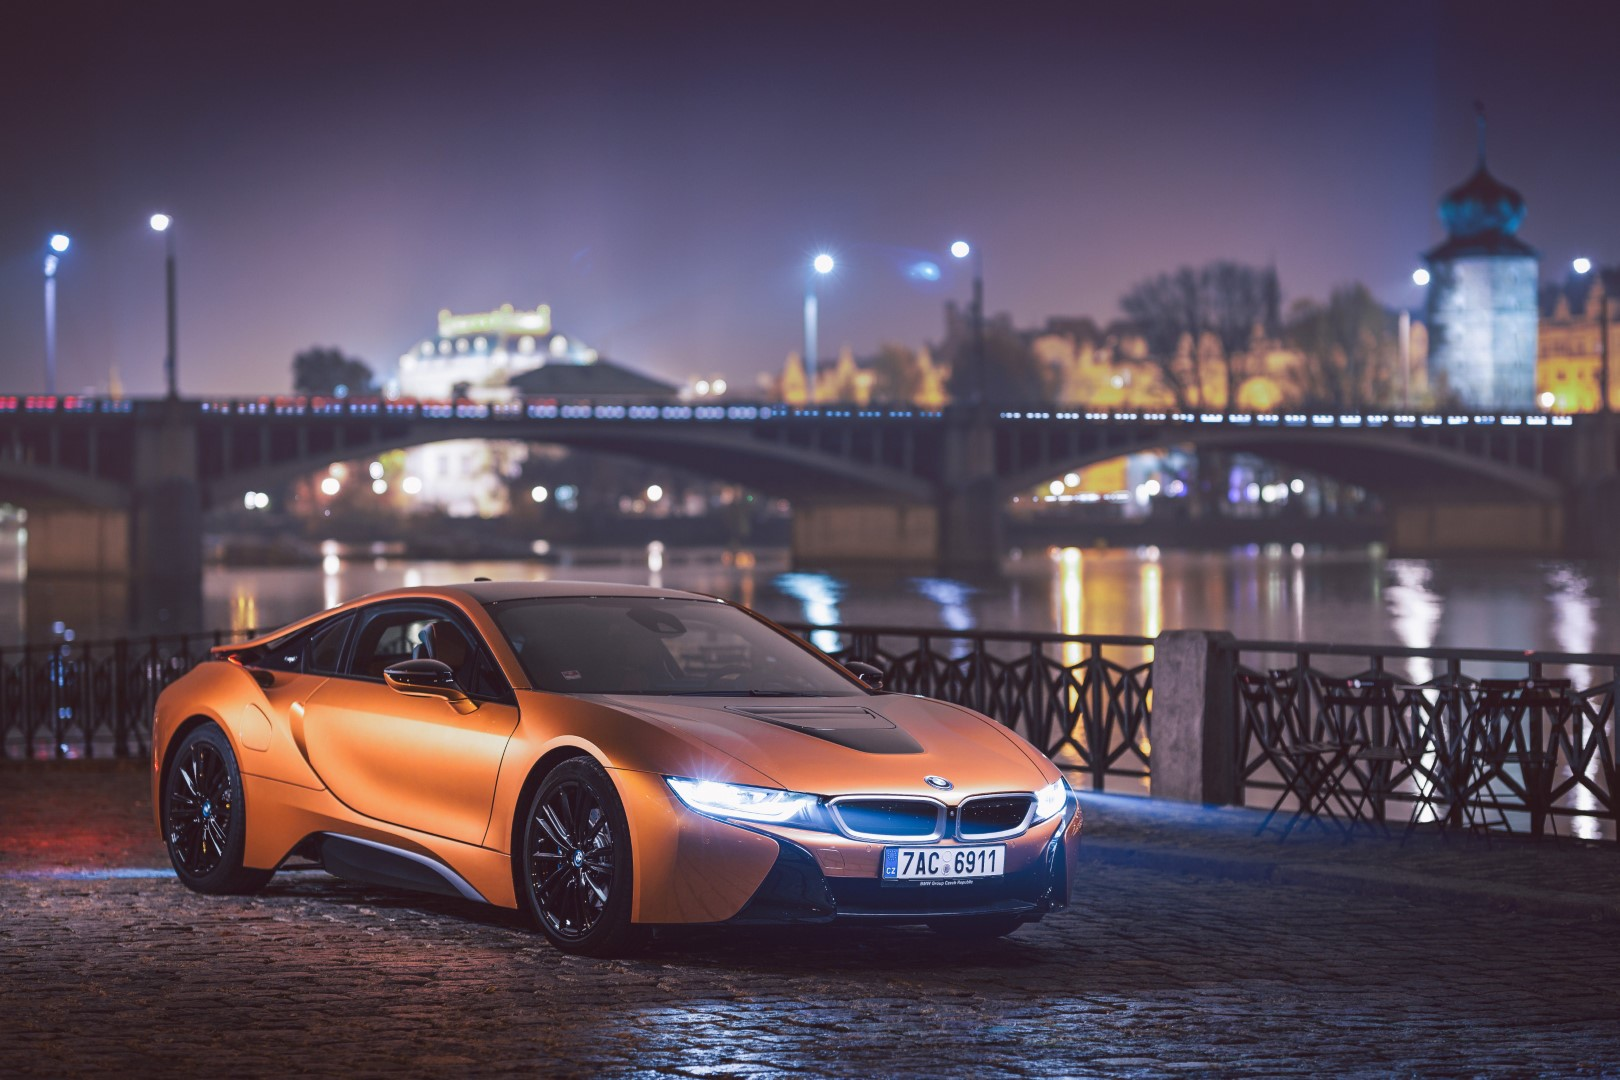 THE LAST DAY OF MERCEDES | BMW I8 ROADSTER